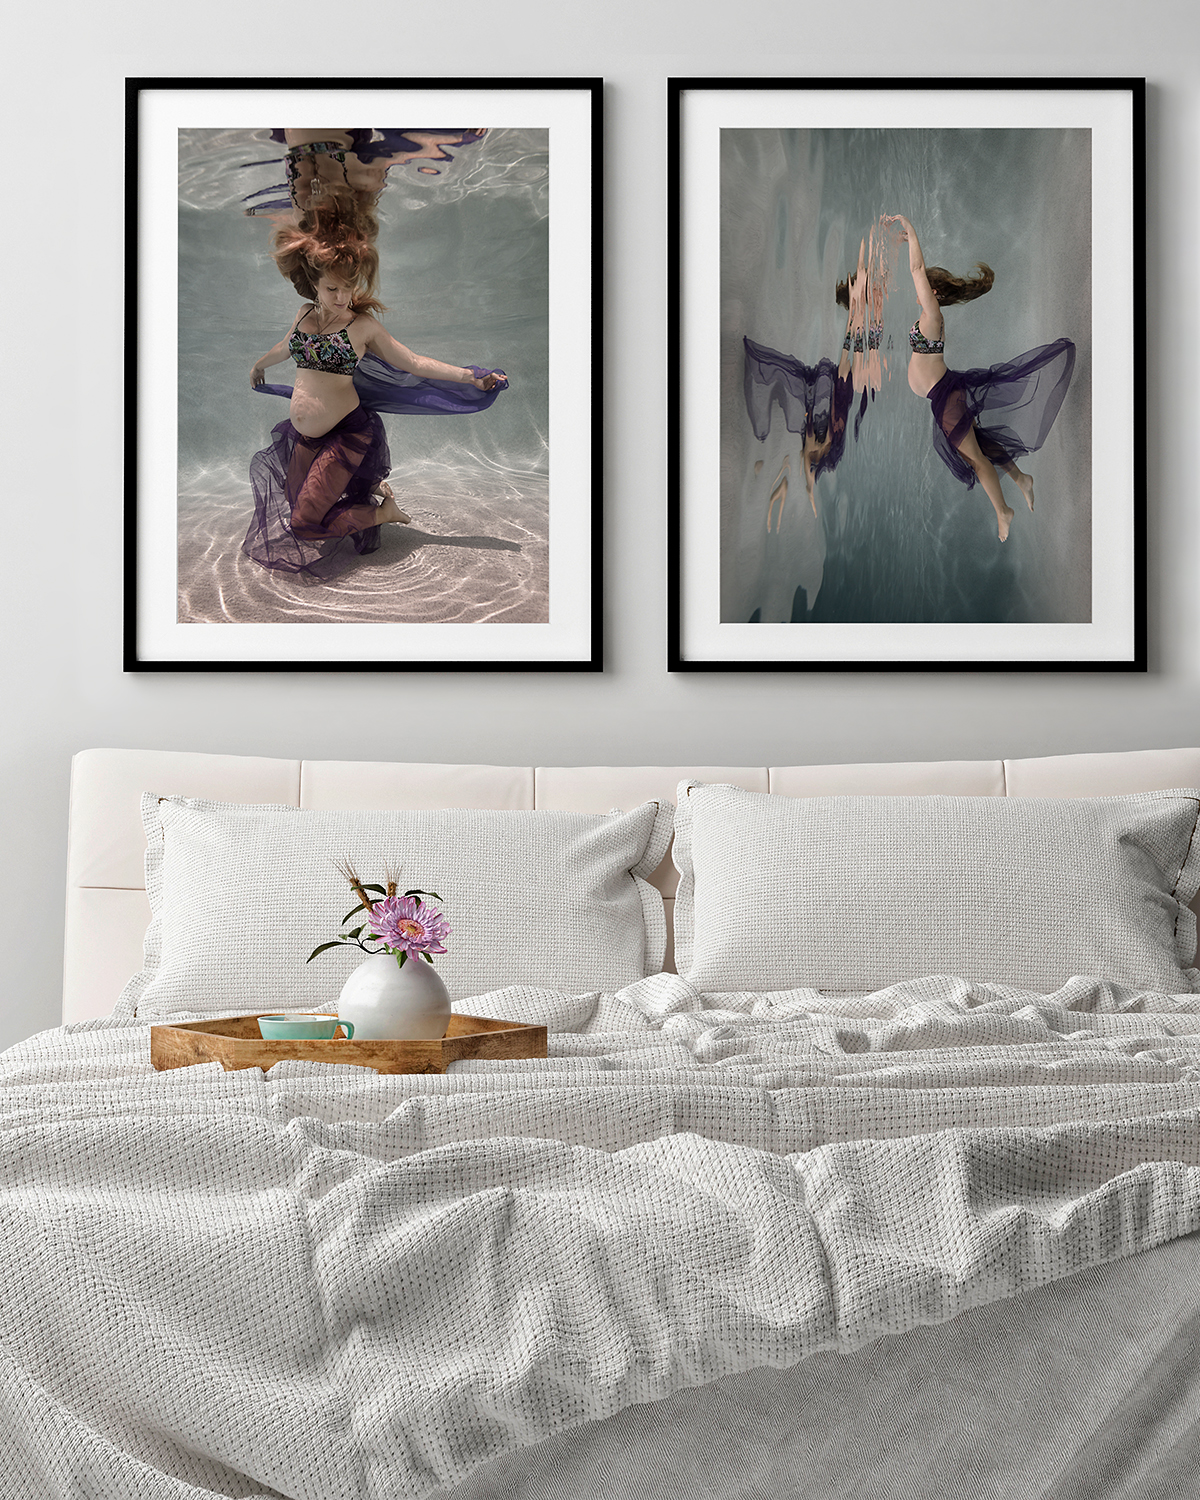 Pair of artworks of pregnant woman underwater, displayed over a bed with white bedding